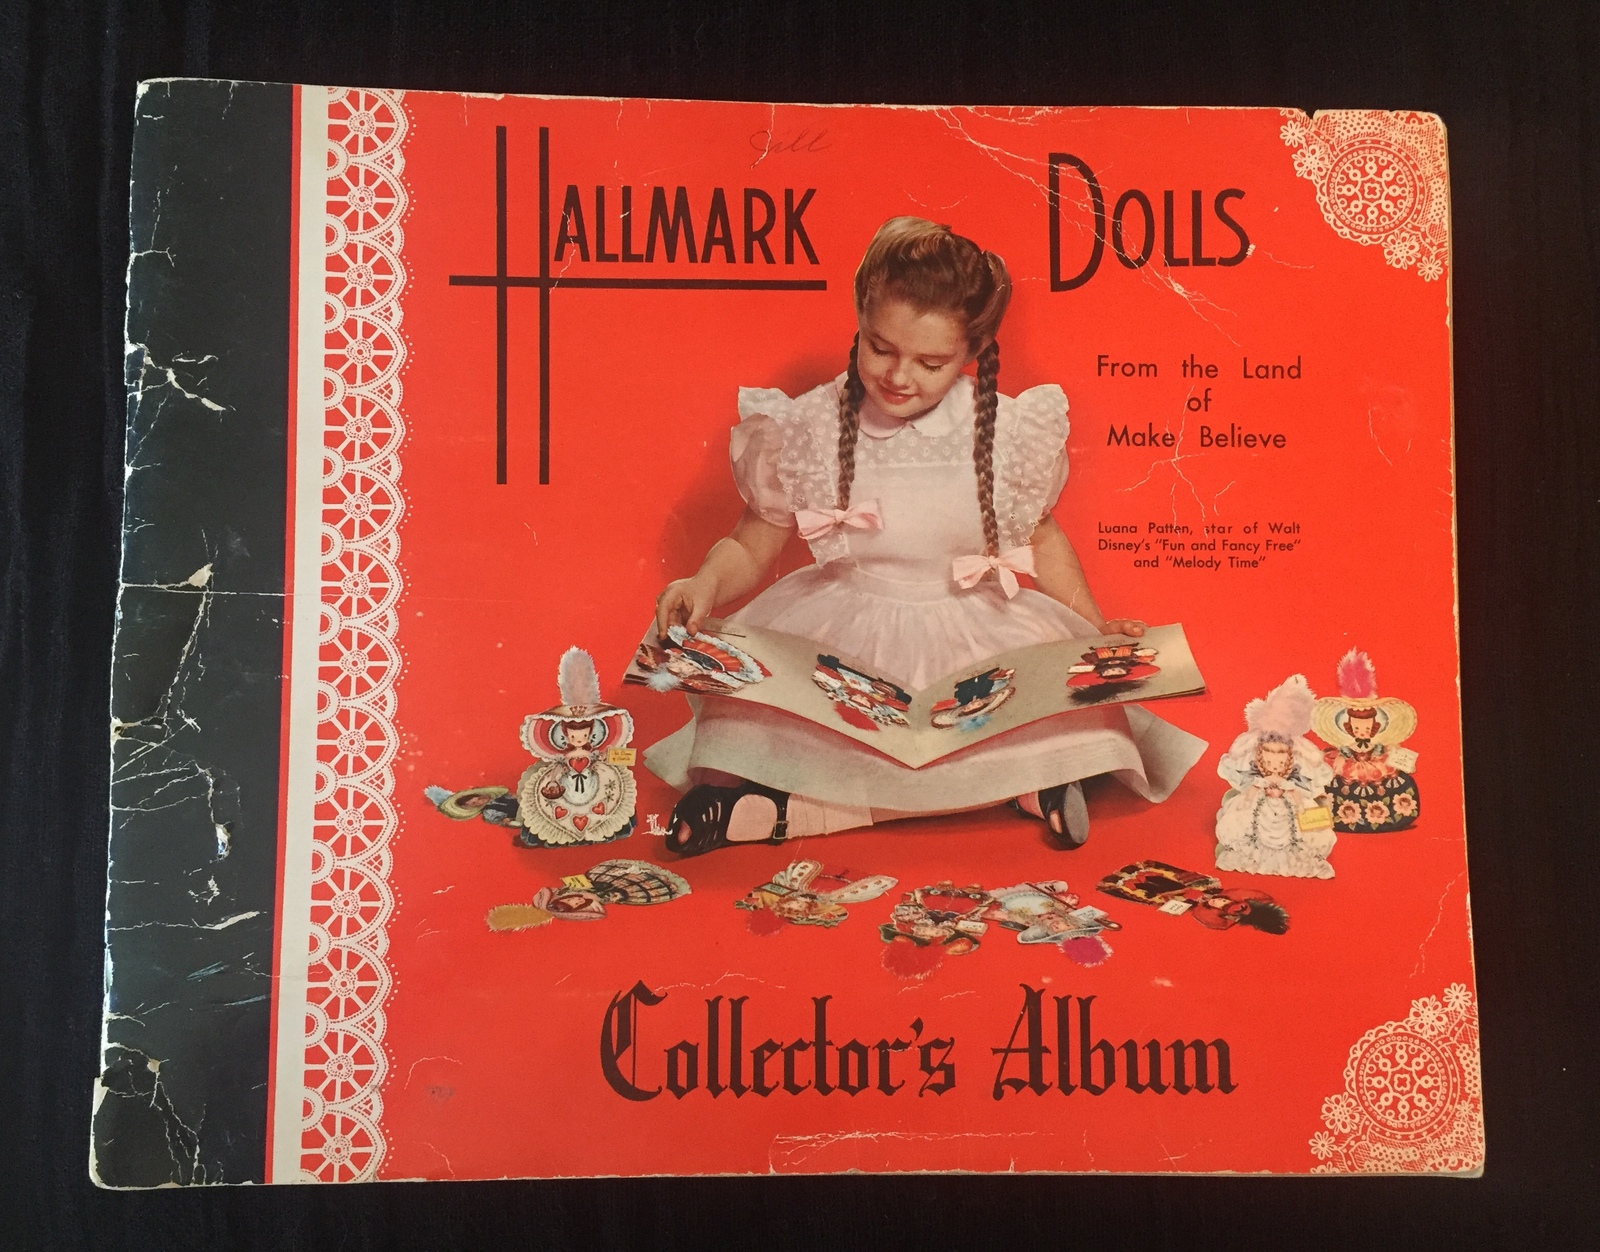 Vintage 40s Hallmark Dolls Collector Album with 7 Original Dolls